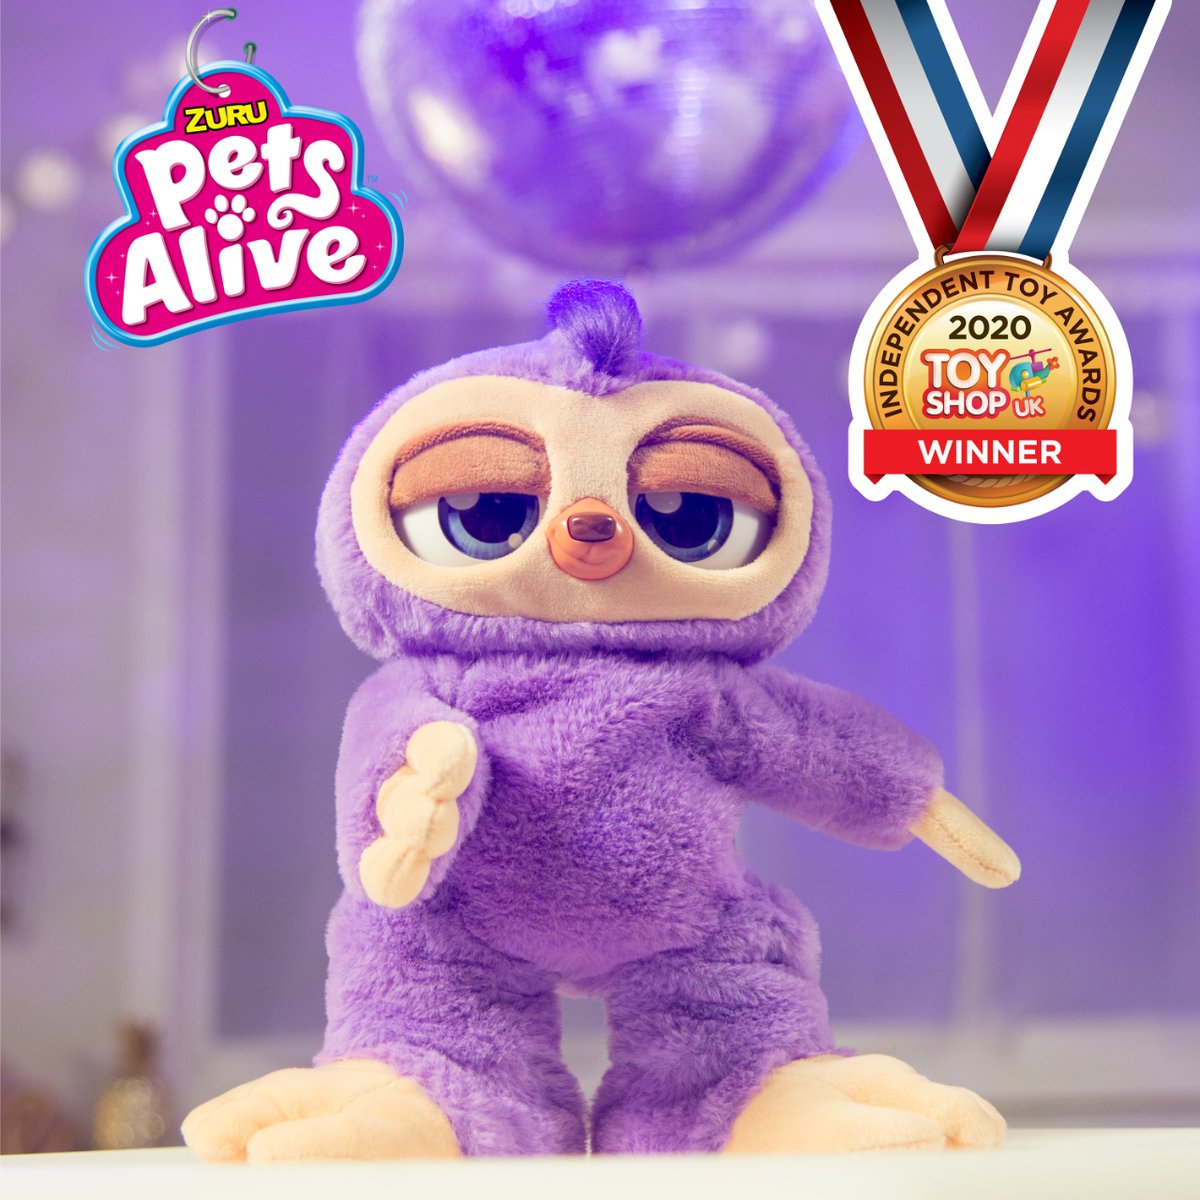 Talking of winners... check out Fifi the flossing sloth! Gold Award winner in the Independent Toy Awards. A MUST have for Xmas - what a mover! #toysoftwitter #toysofinstagram #winner ZURU Toys Toy Shop UK https://t.co/jQ5bylEt7t